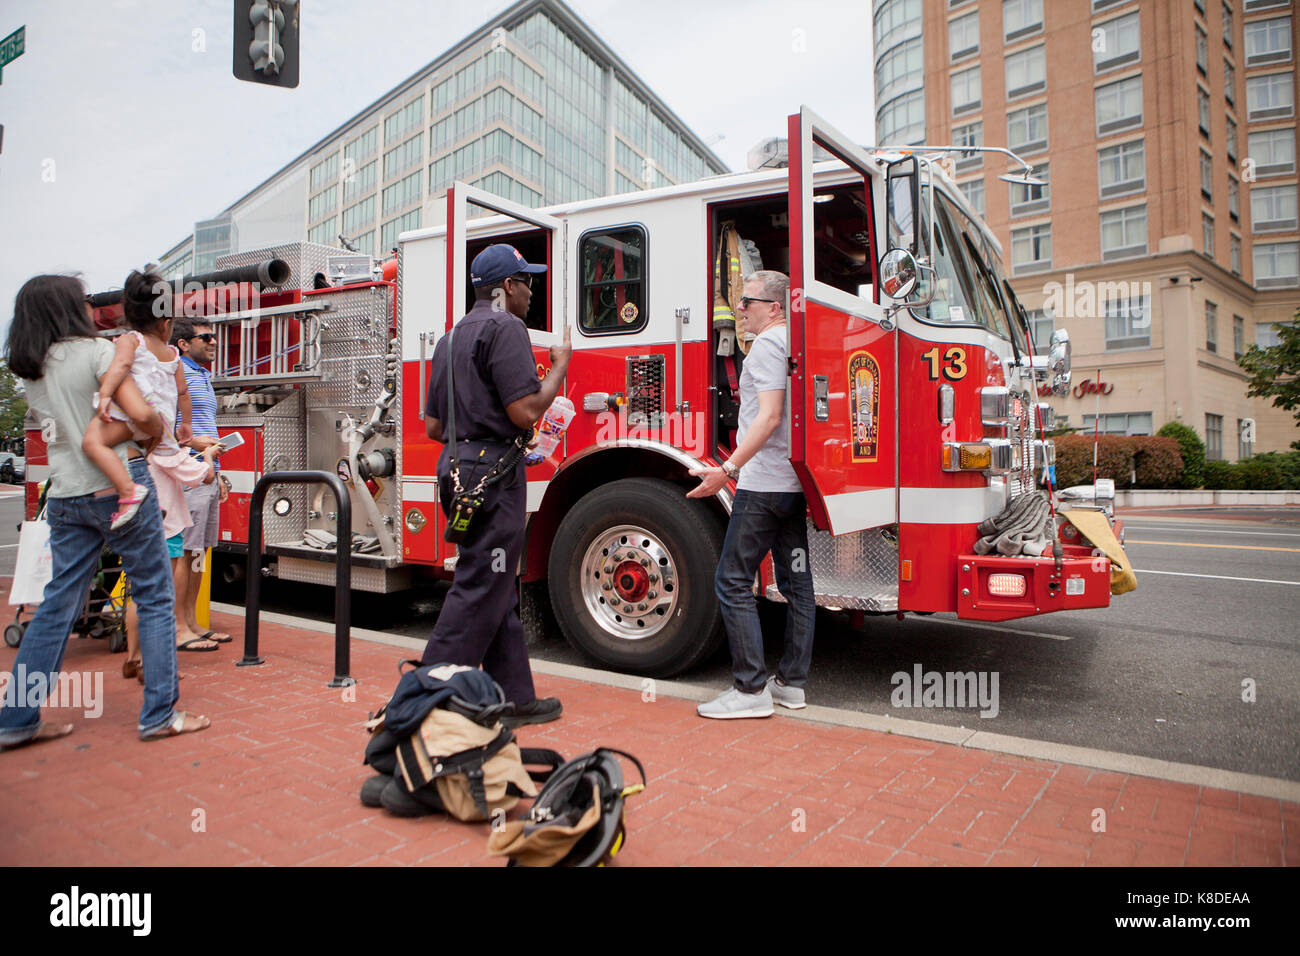 Firefighter showing public fire engine truck - Washington, DC USA - Stock Image